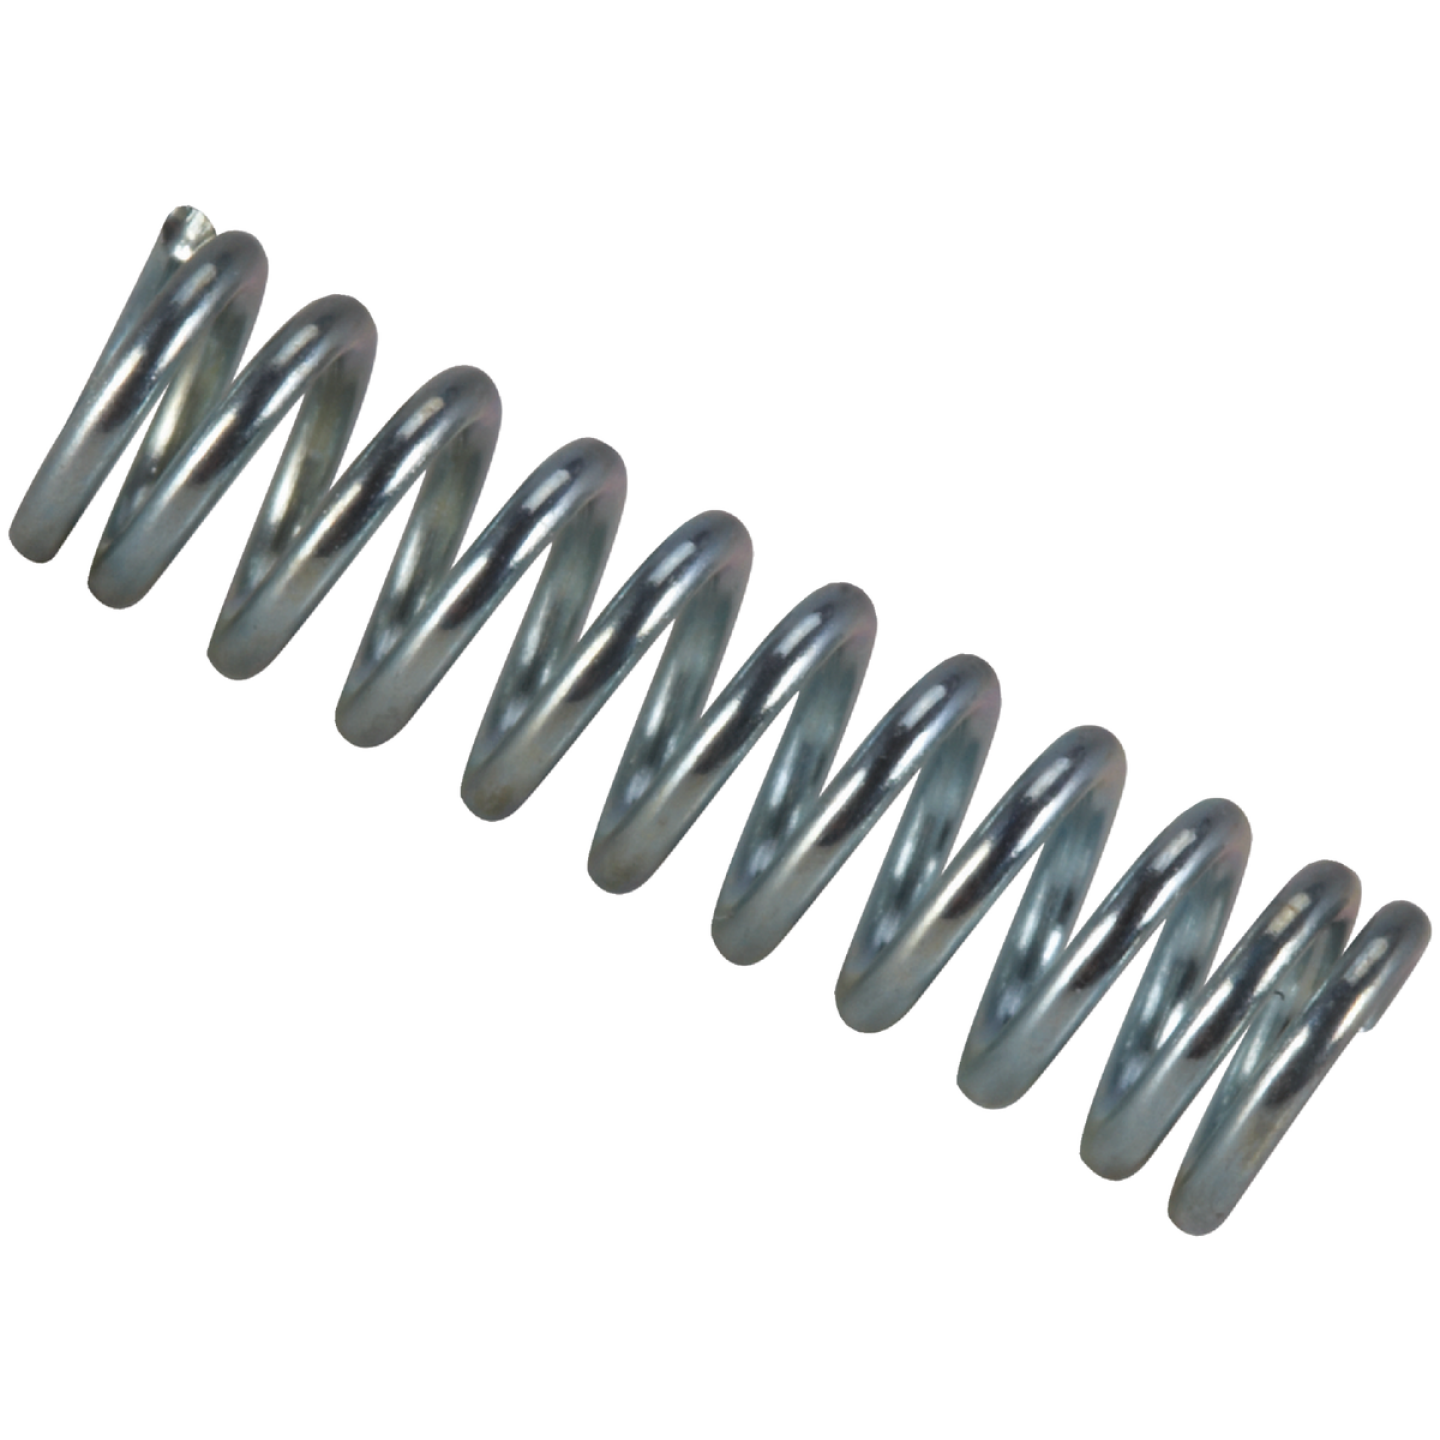 Century Spring 2 In. x 15/16 In. Compression Spring (2 Count) Image 1